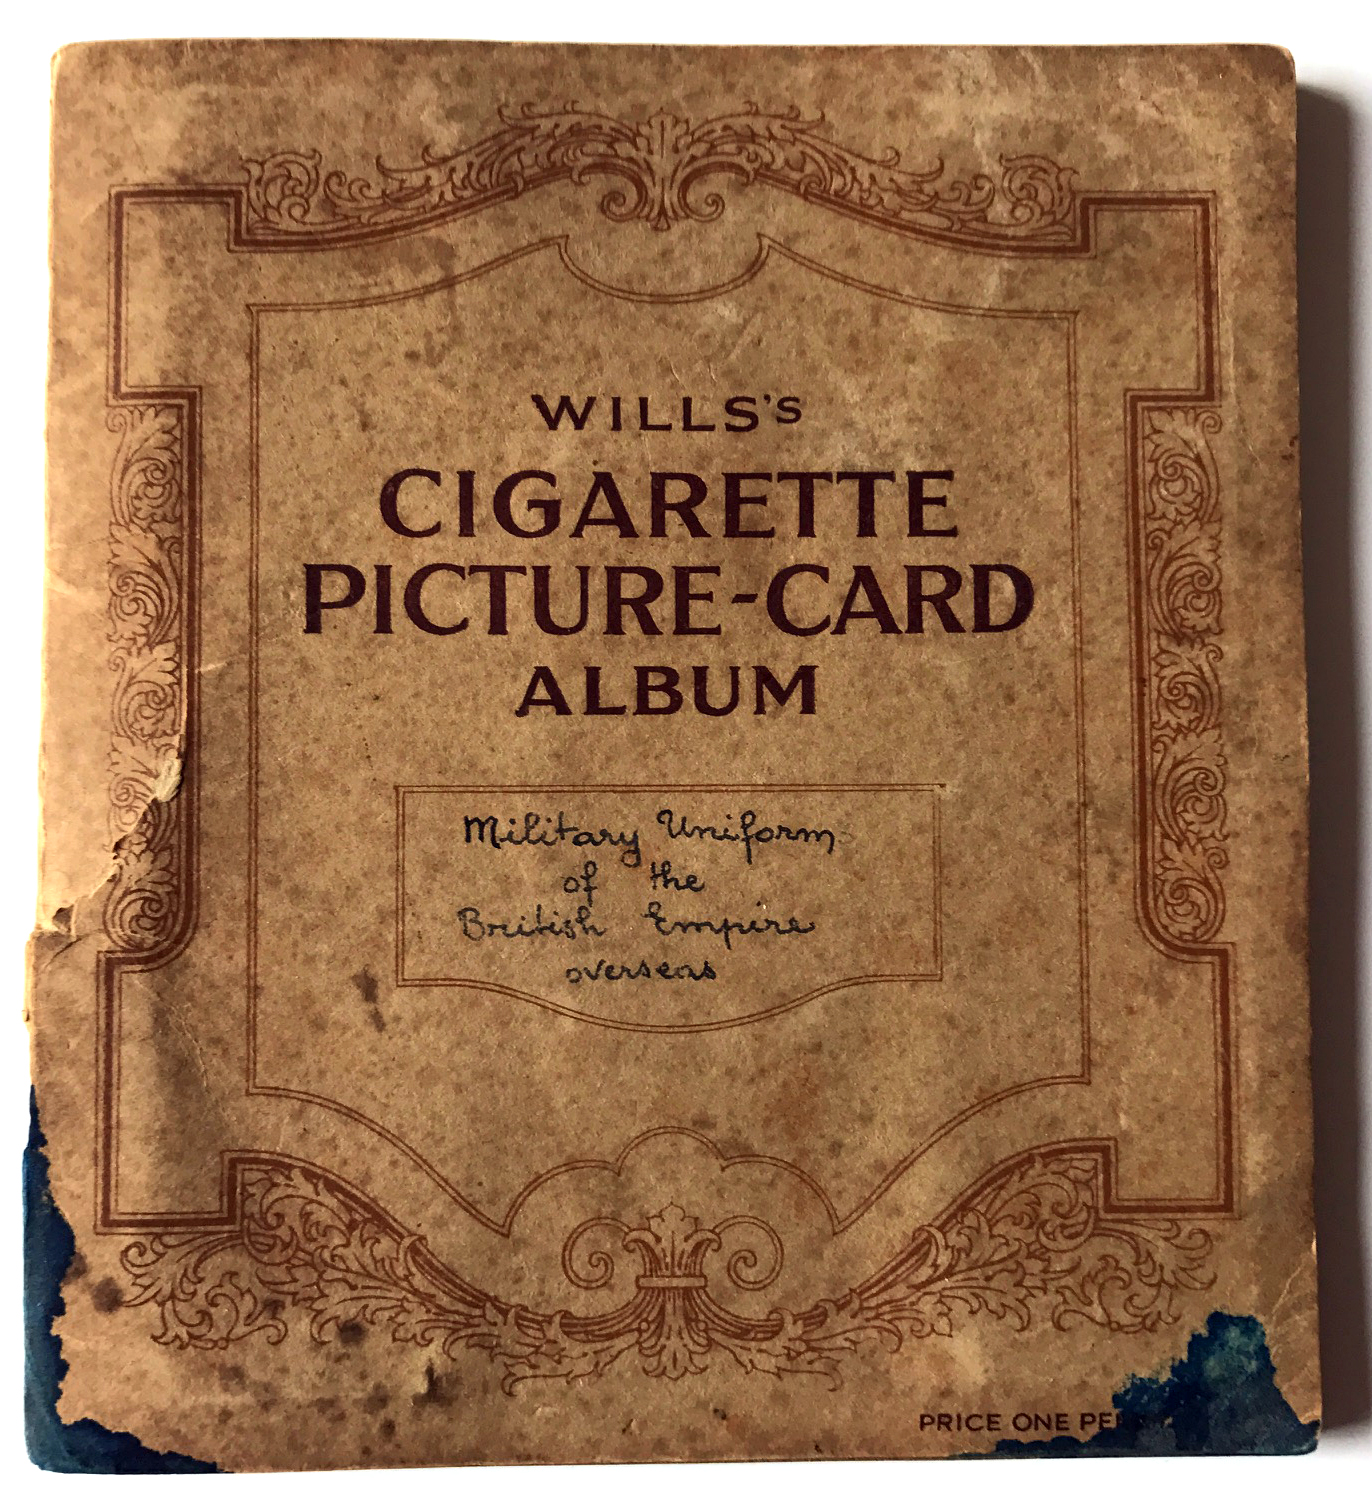 Cigarette Picture Card Album Wills's - Album de carte - Military Uniform of the British empire overseas